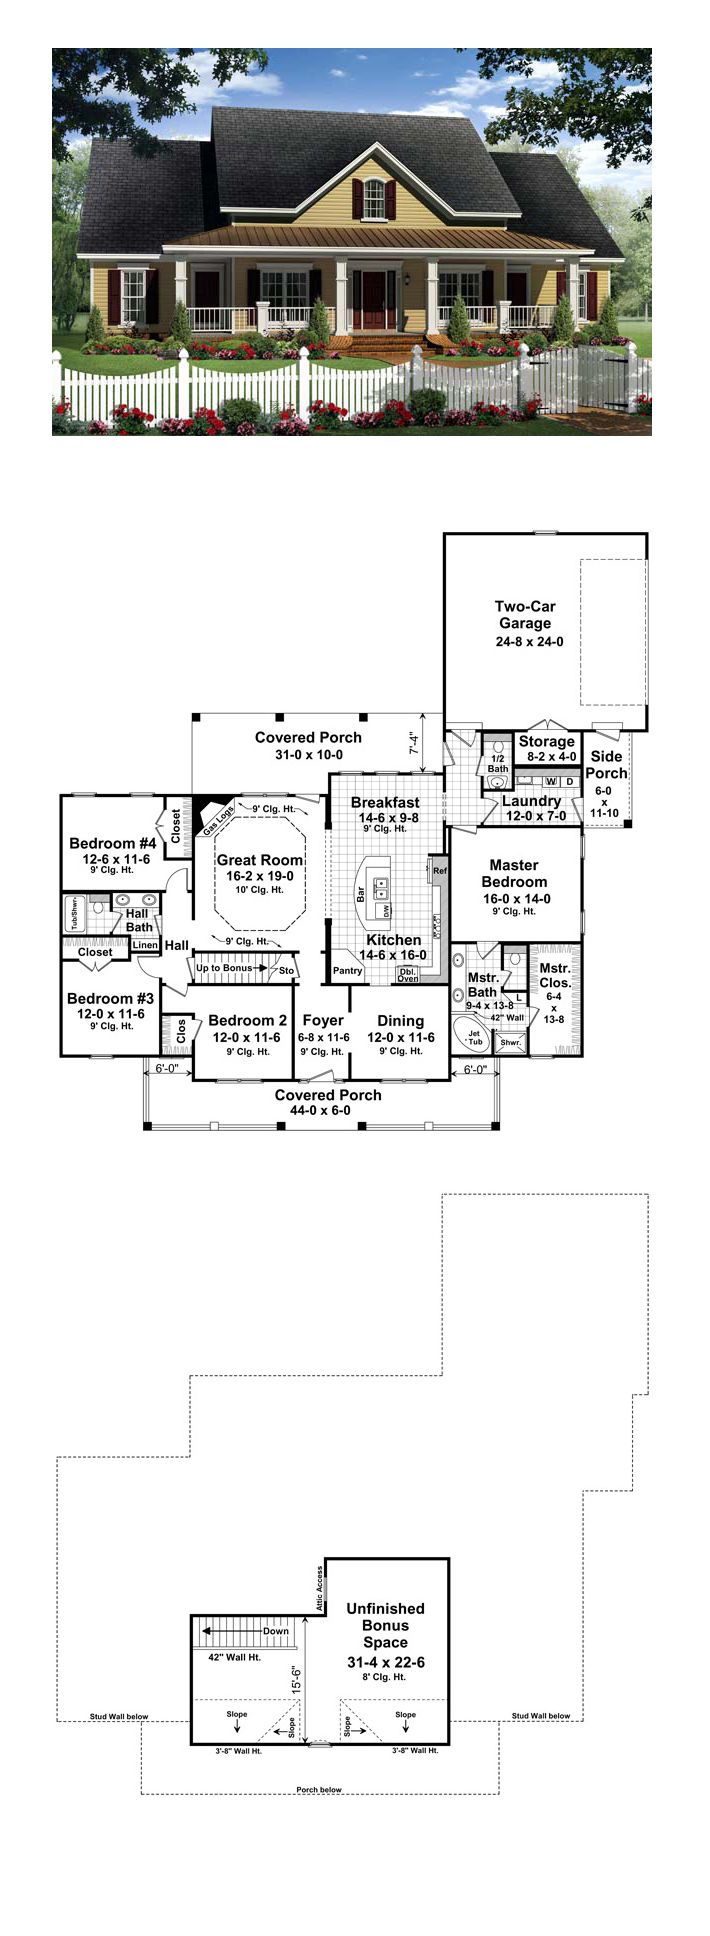 62 best country house plans images on pinterest country house 62 best country house plans images on pinterest country house plans country houses and house floor plans